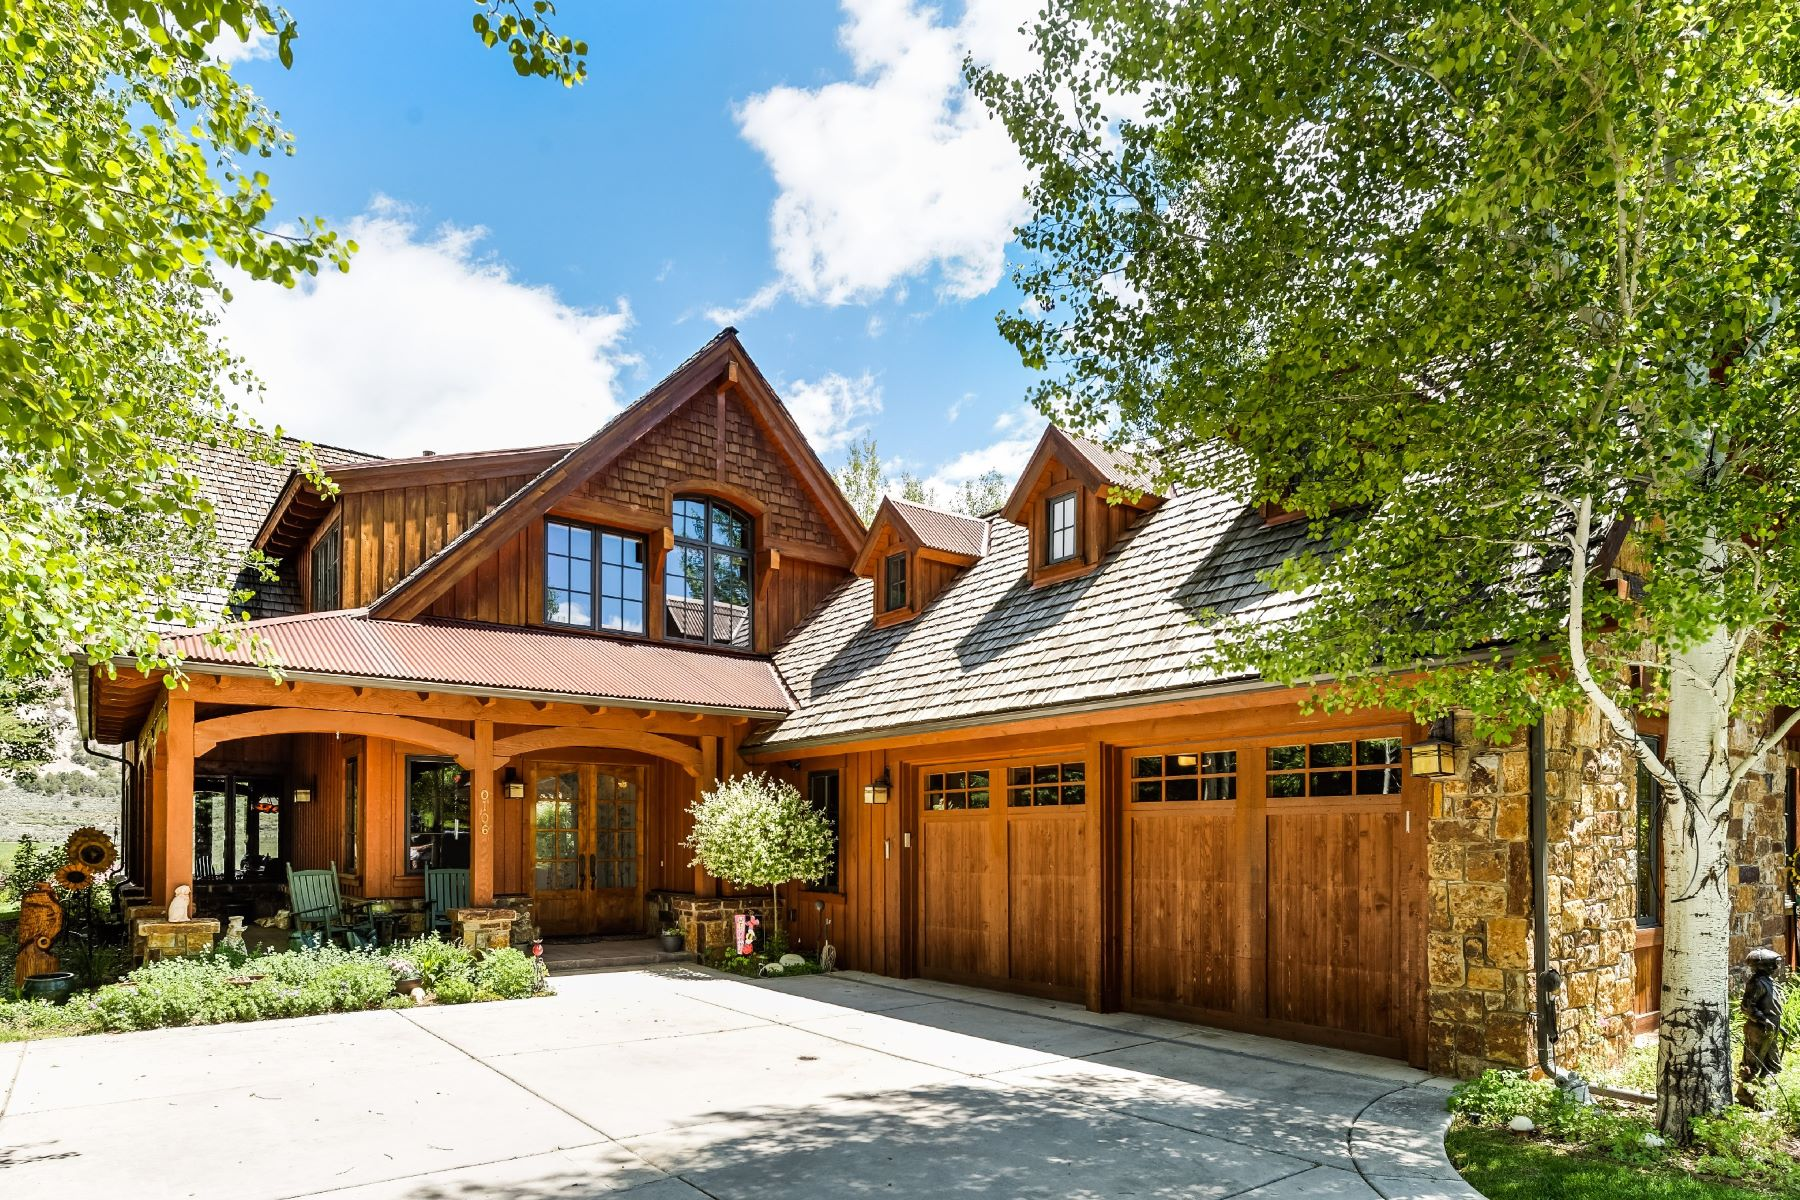 Single Family Home for Sale at Aspen Glen Club Lodge 0106 Club Lodge Drive Carbondale, Colorado, 81623 United States